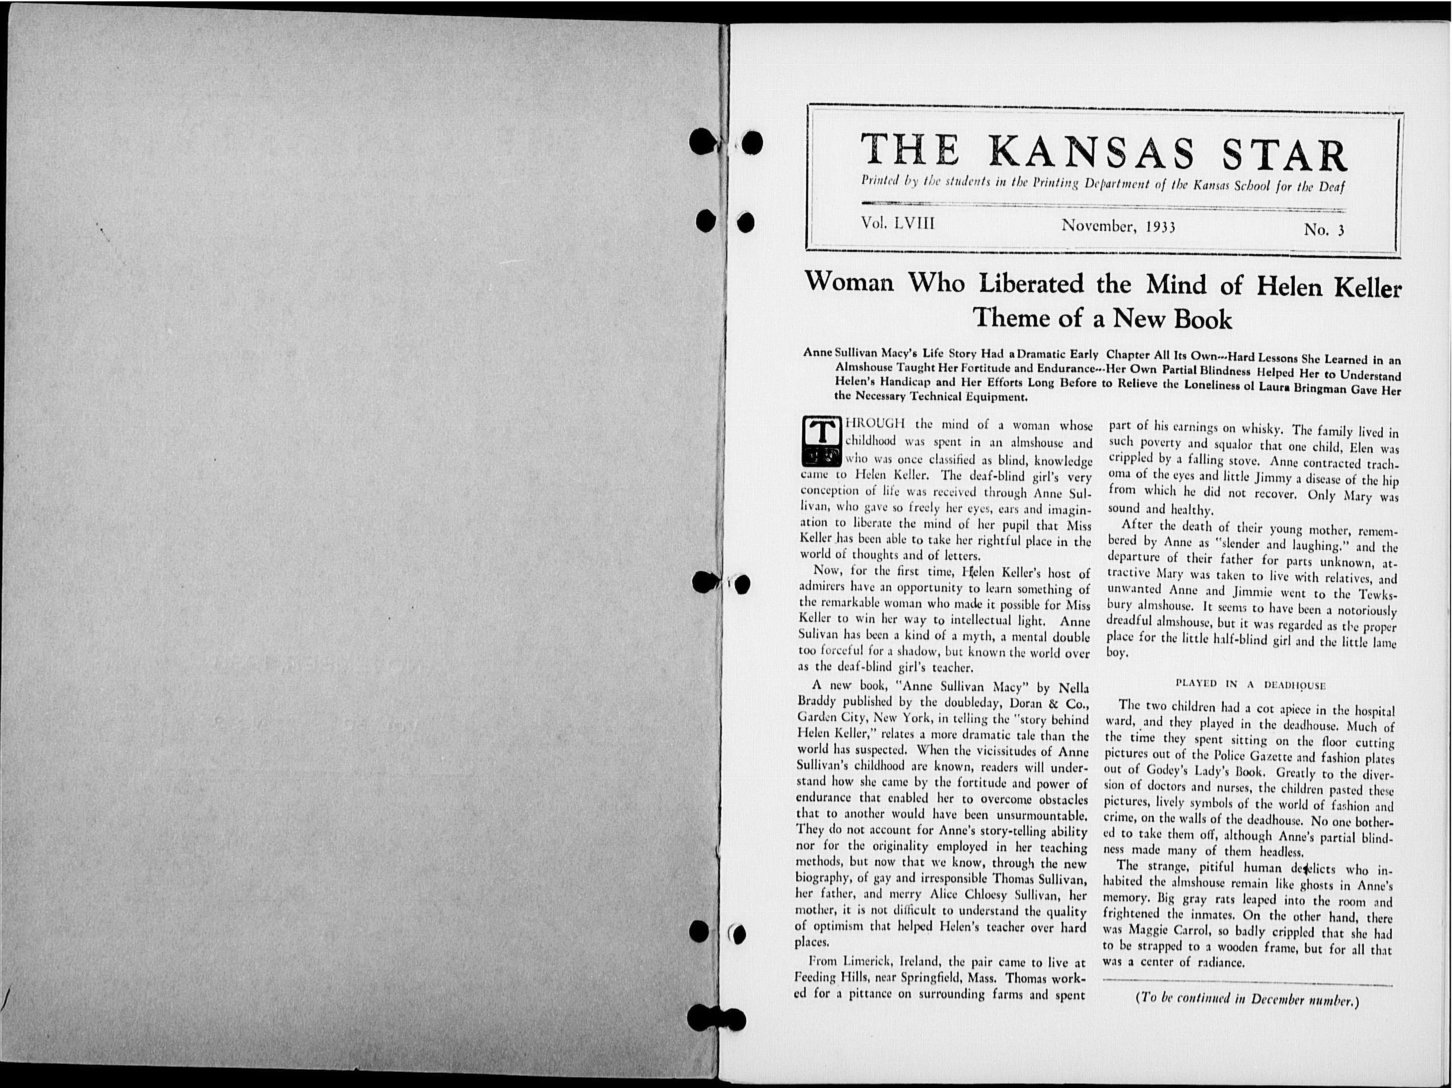 The Kansas Star, volume 58, number 3 - Inside cover-1